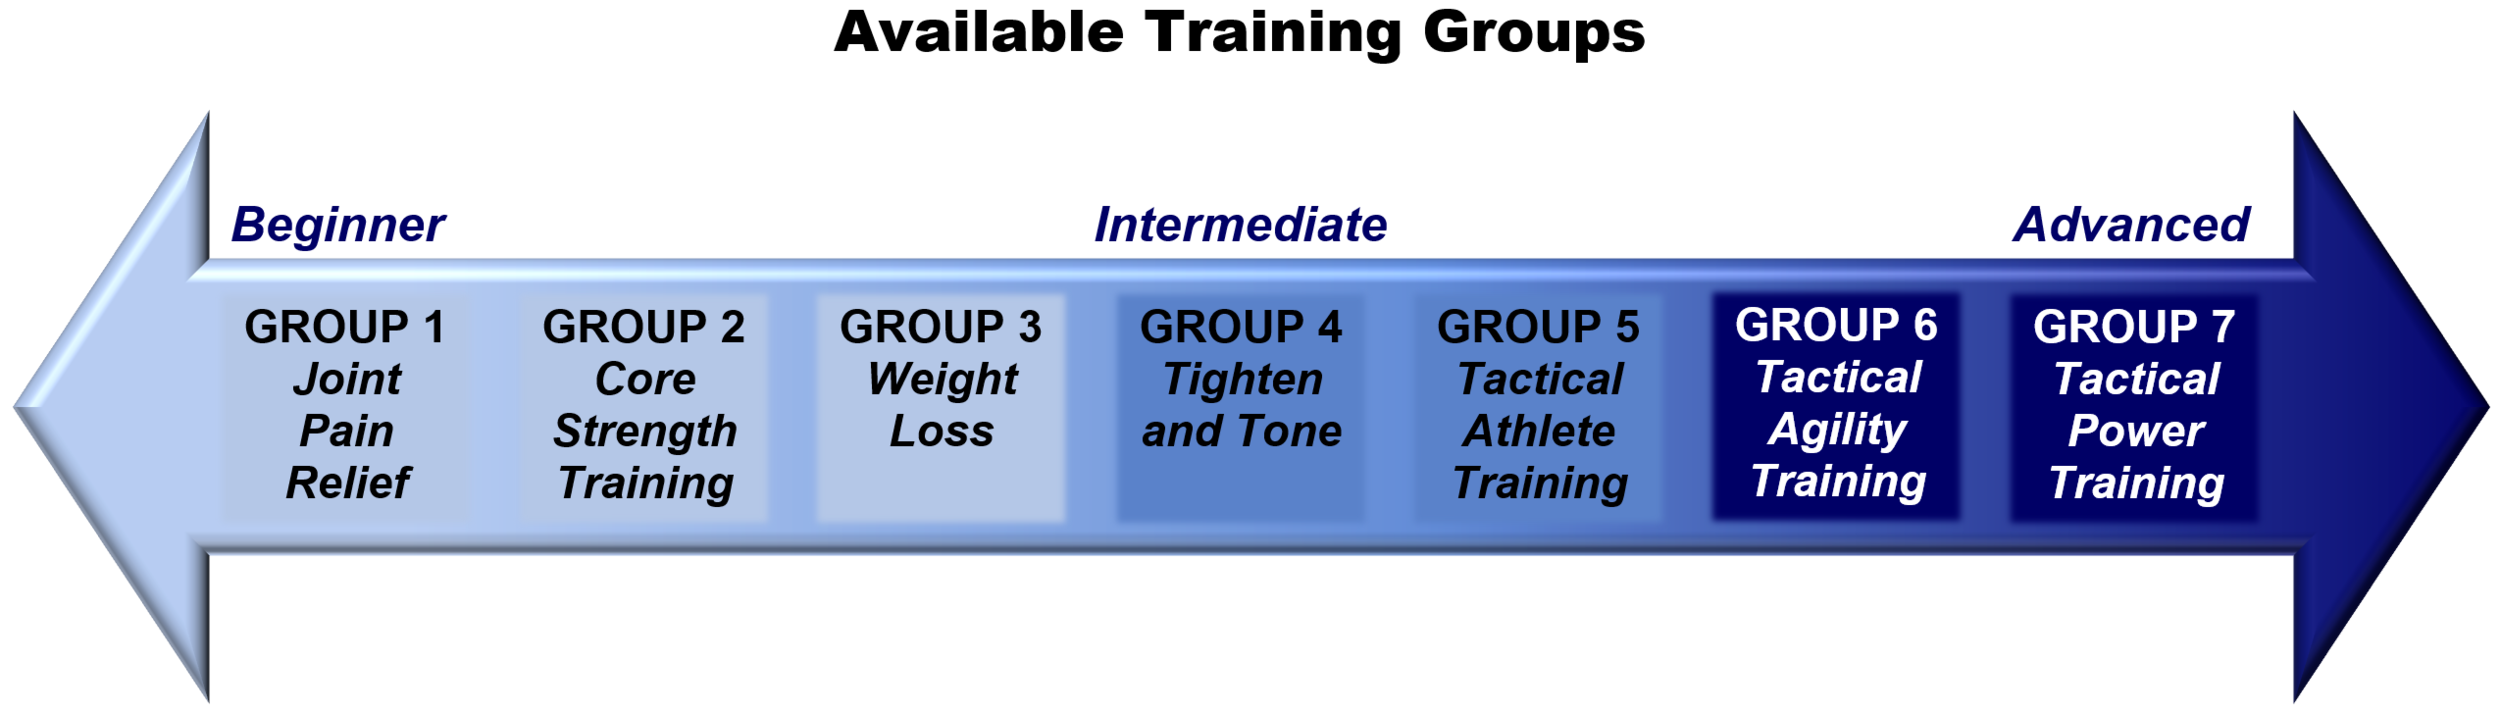 Group Wellness Solutions- Available Training Groups Graphic.PNG